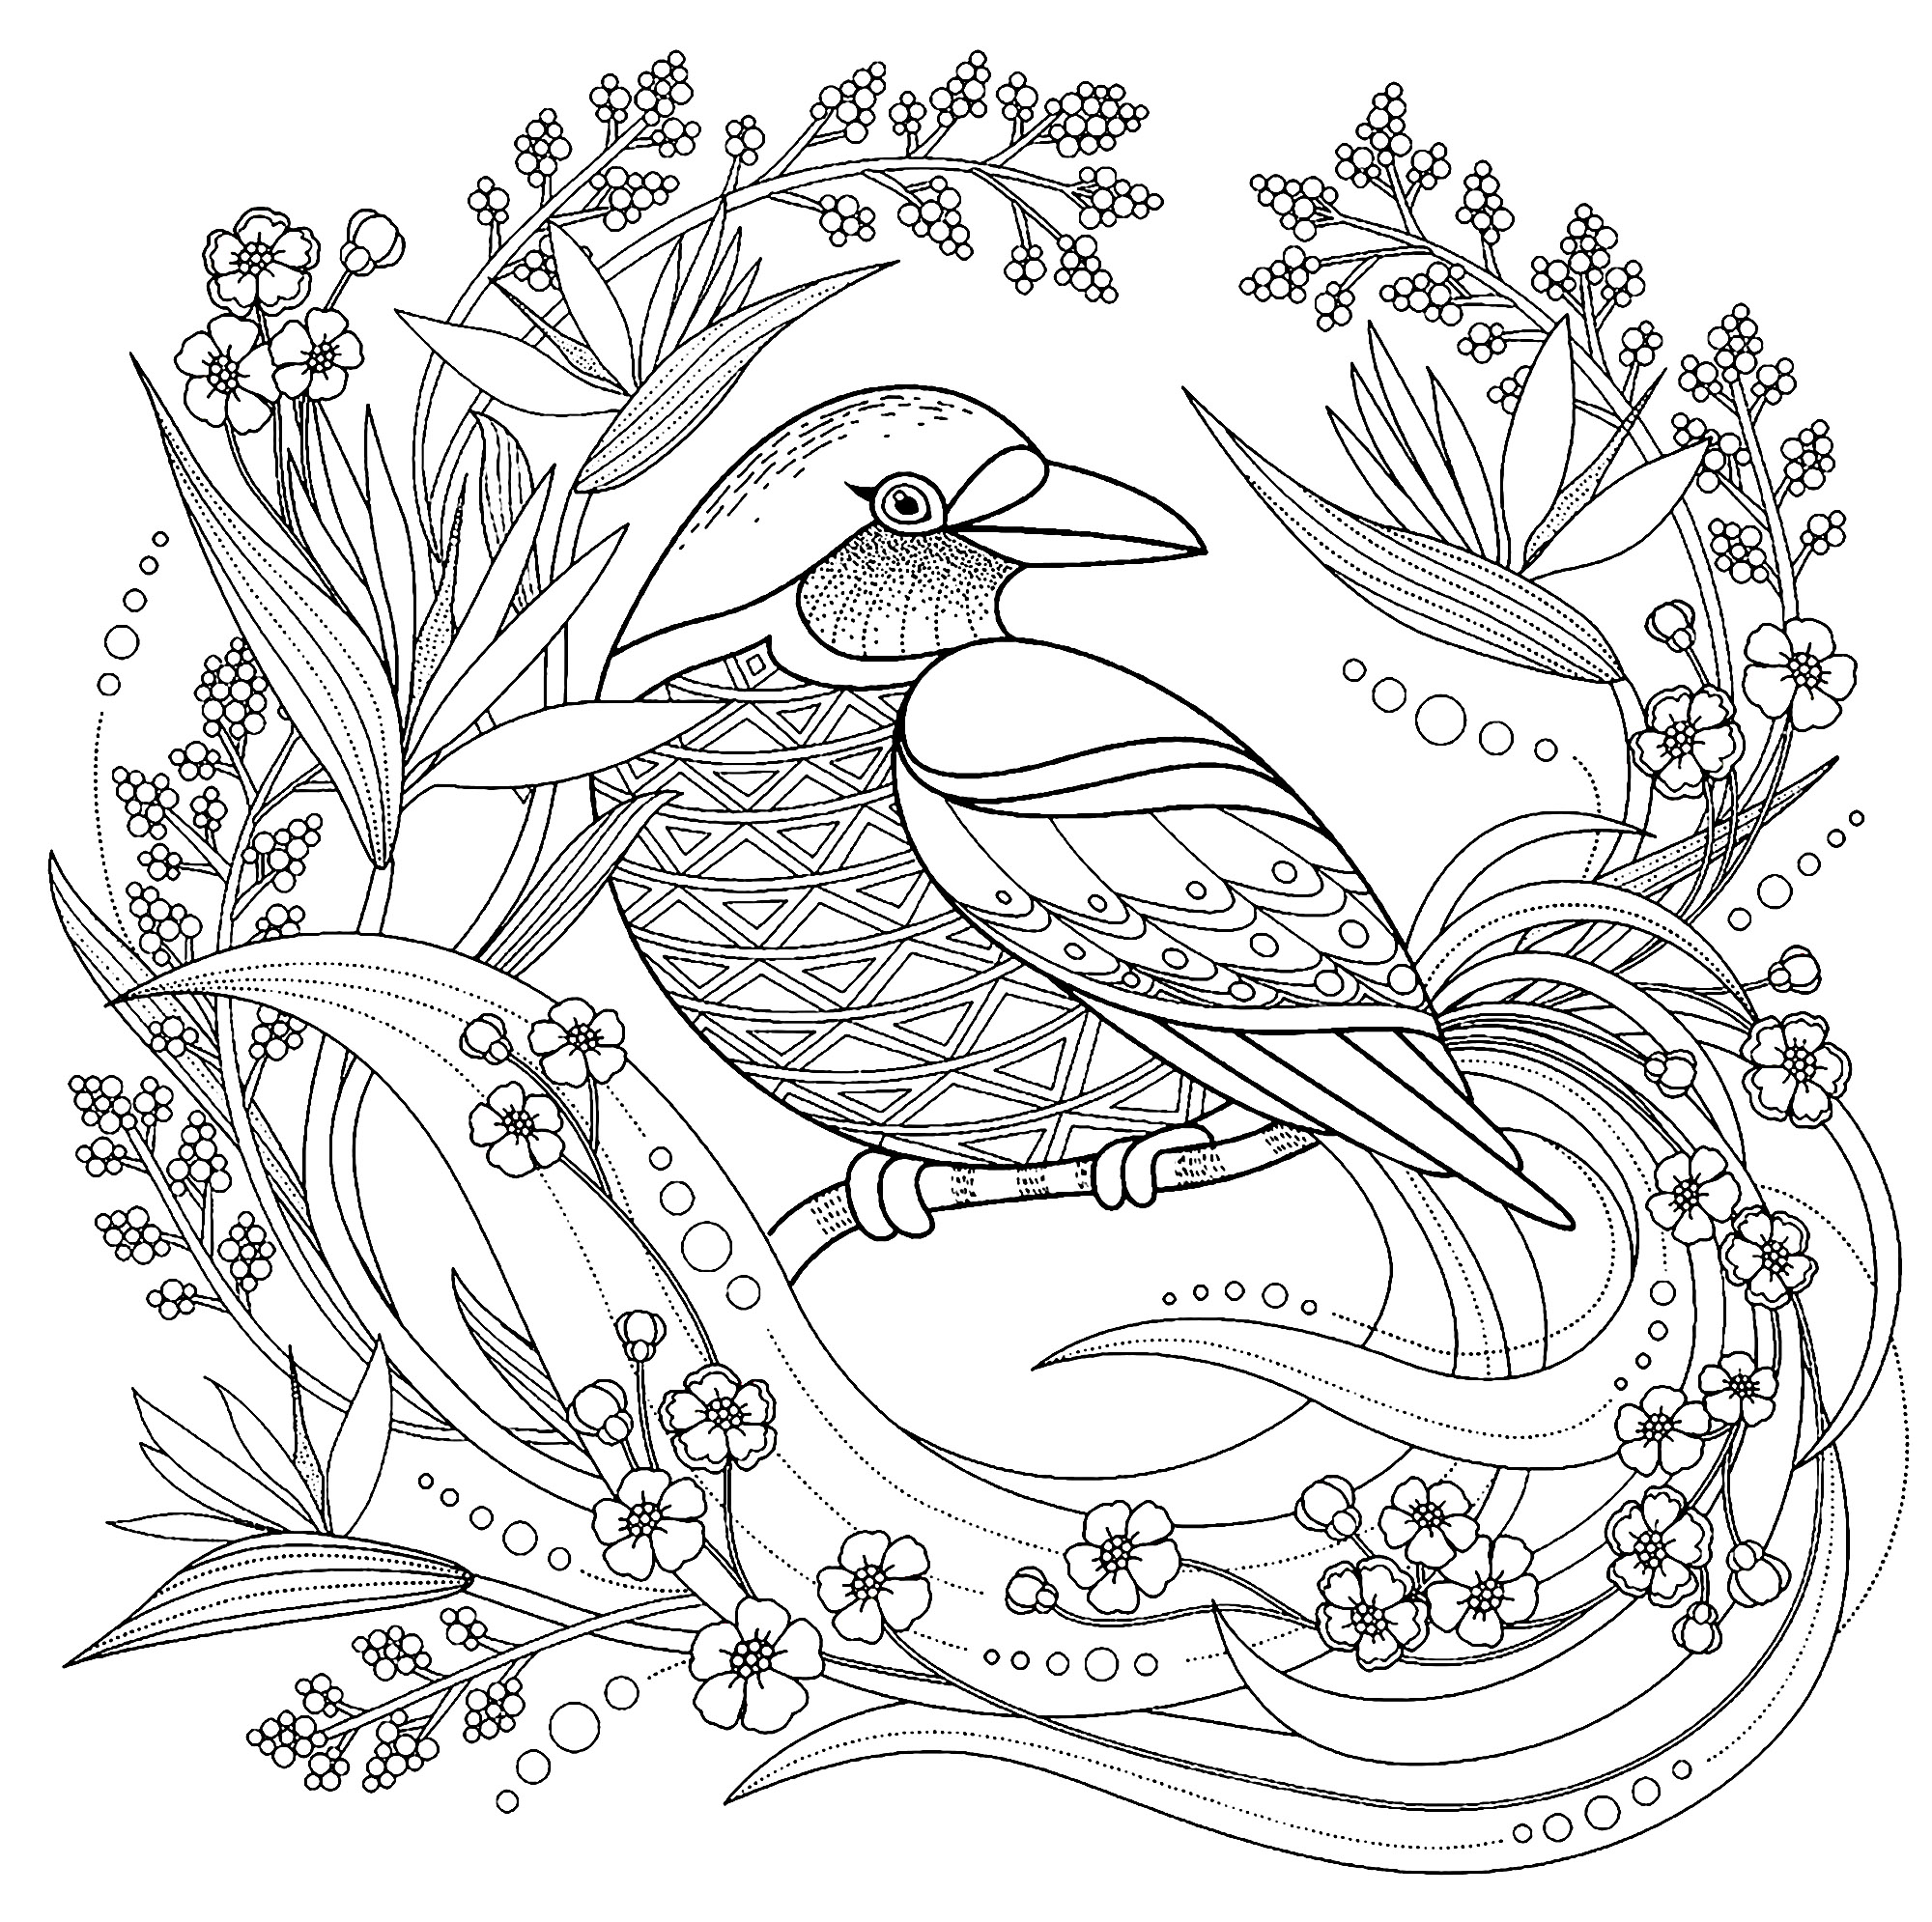 coloring pictures birds bird with floral elements birds adult coloring pages birds pictures coloring